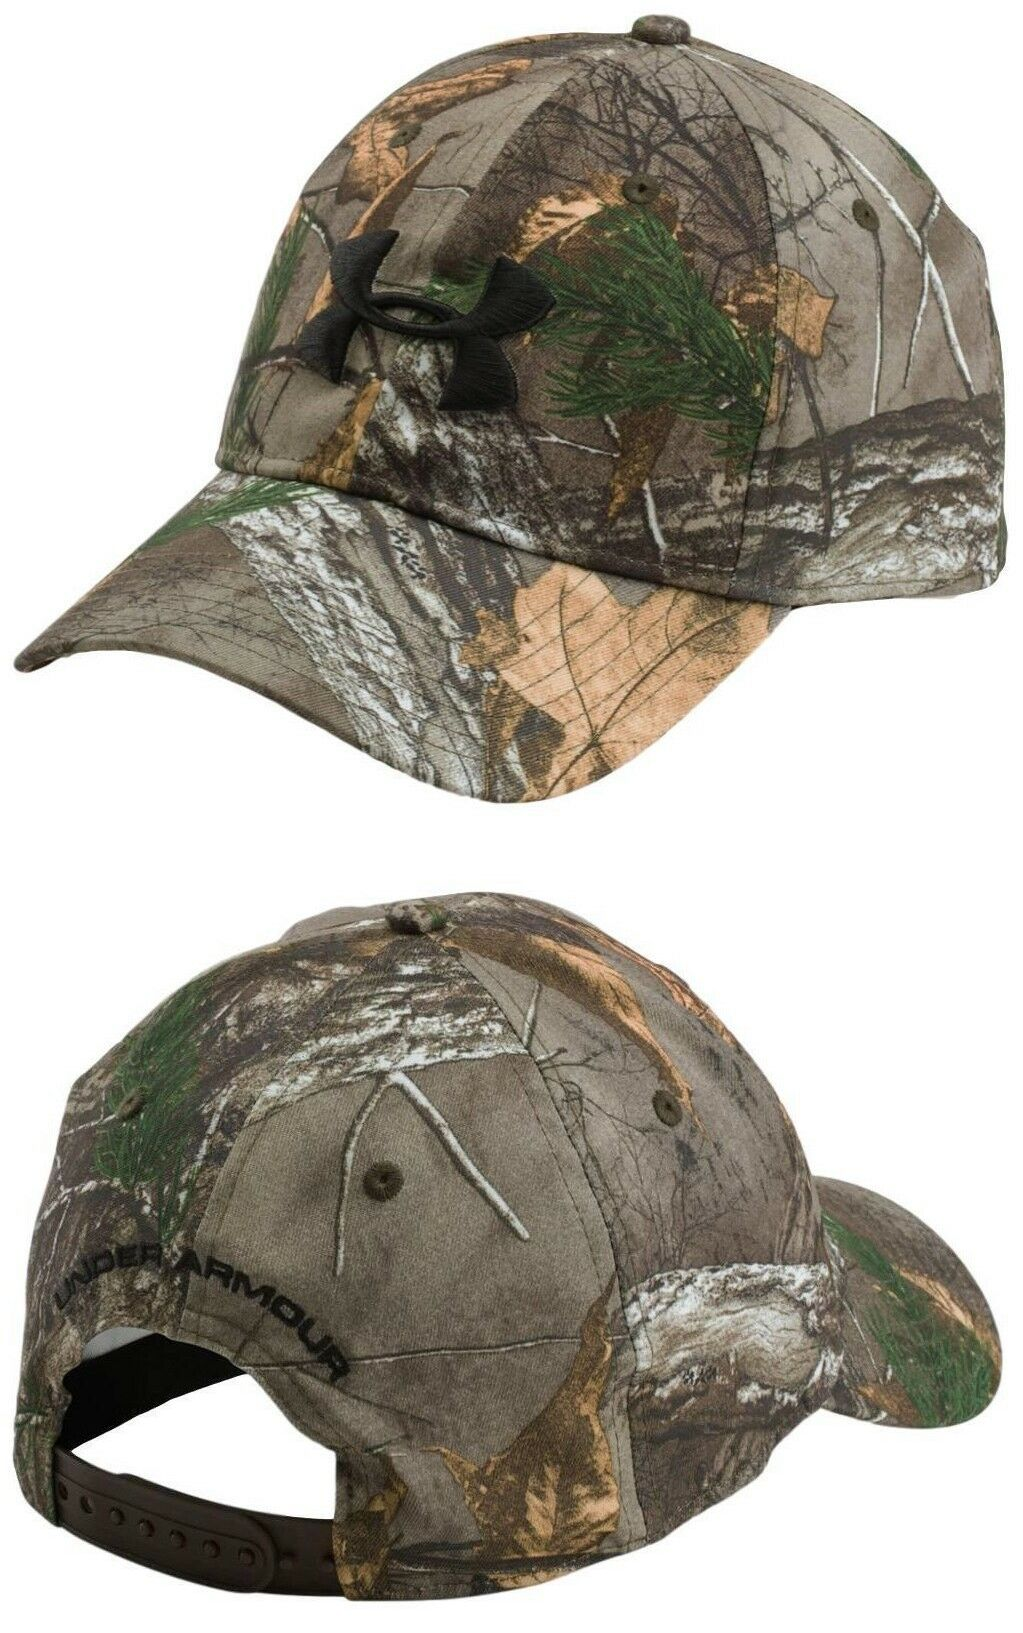 8f3a46f1650 Hats and Headwear 159035  Under Armour Men S Ua Camo 2.0 Snapback Hunting  Hat Cap (Realtree Xtra) Nwt -  BUY IT NOW ONLY   14.99 on  eBay  headwear   under ...